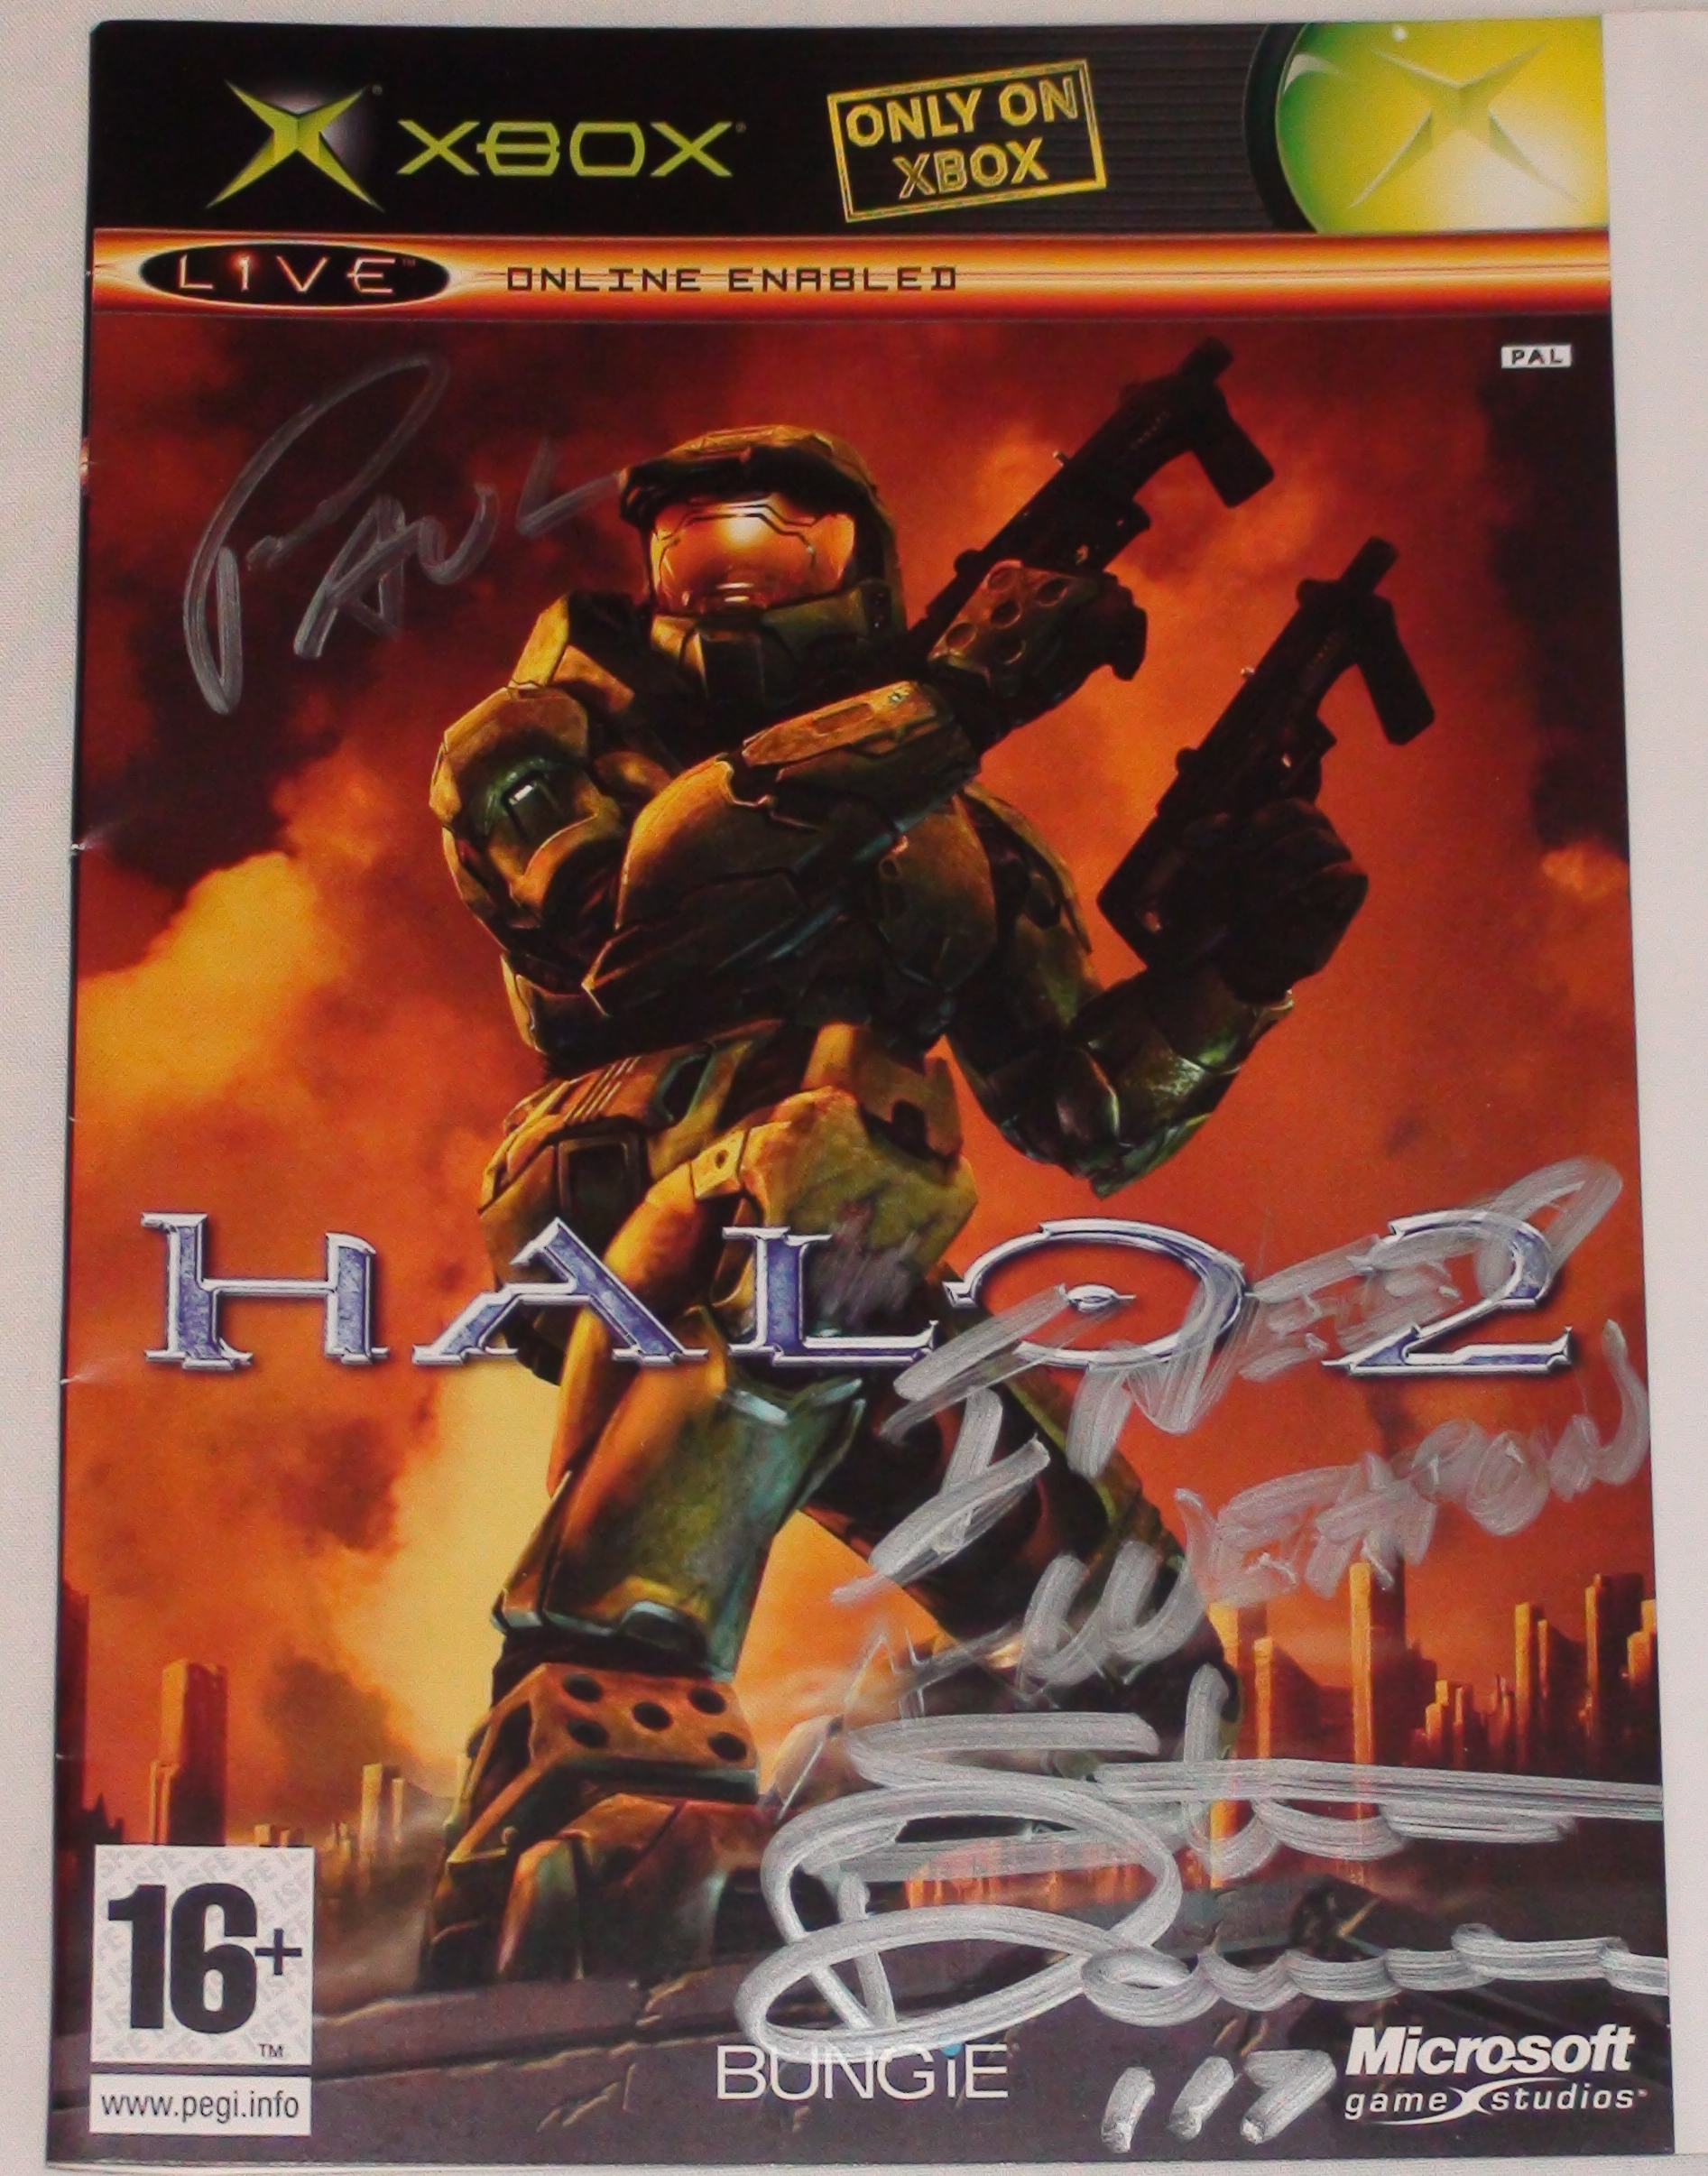 Halo 2 - Steve Downes